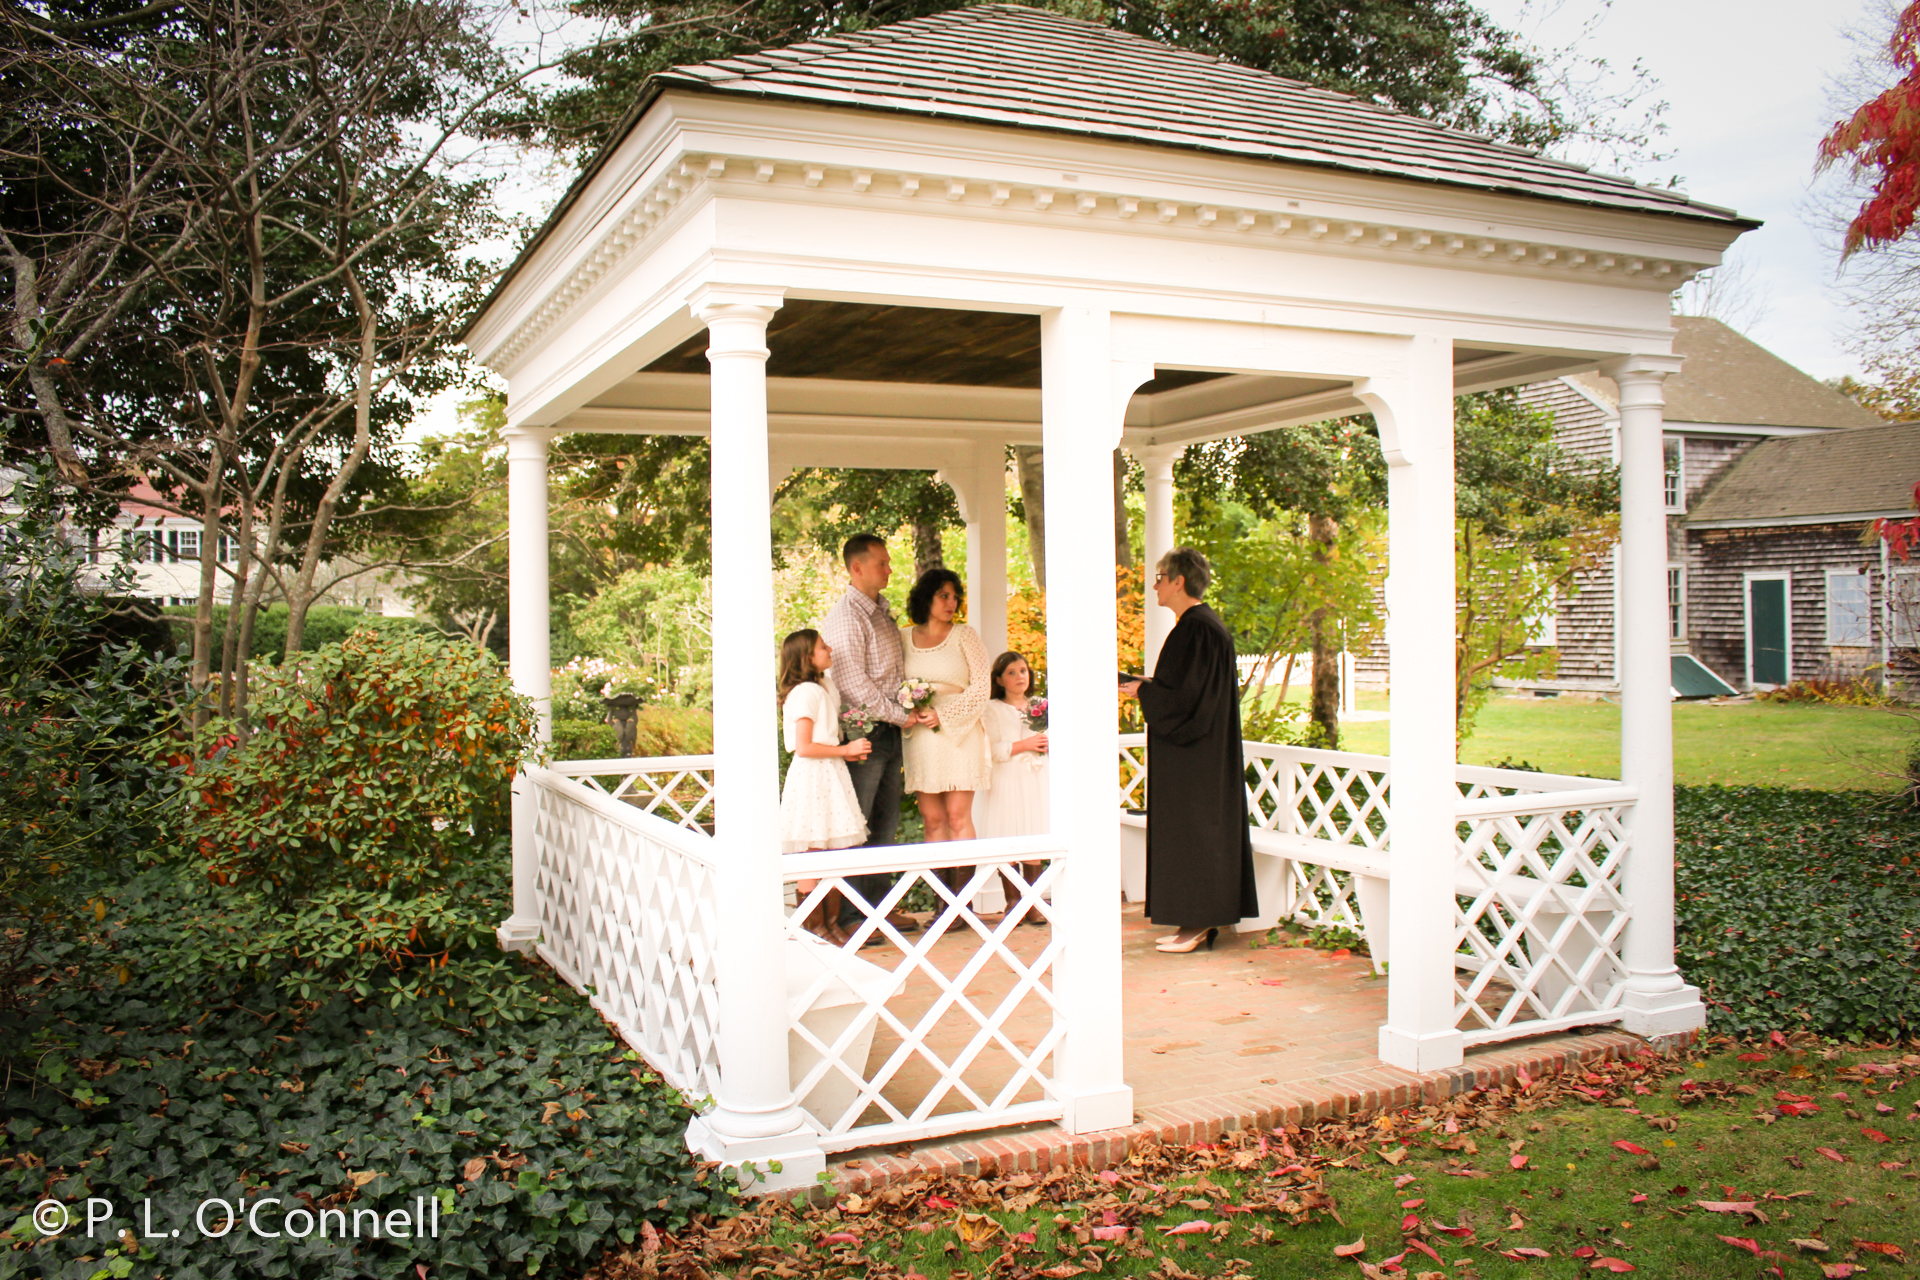 Wedding ceremony in the gazebo at the Museums on the Green in Falmouth, Cape Cod, Massachusetts, USA.